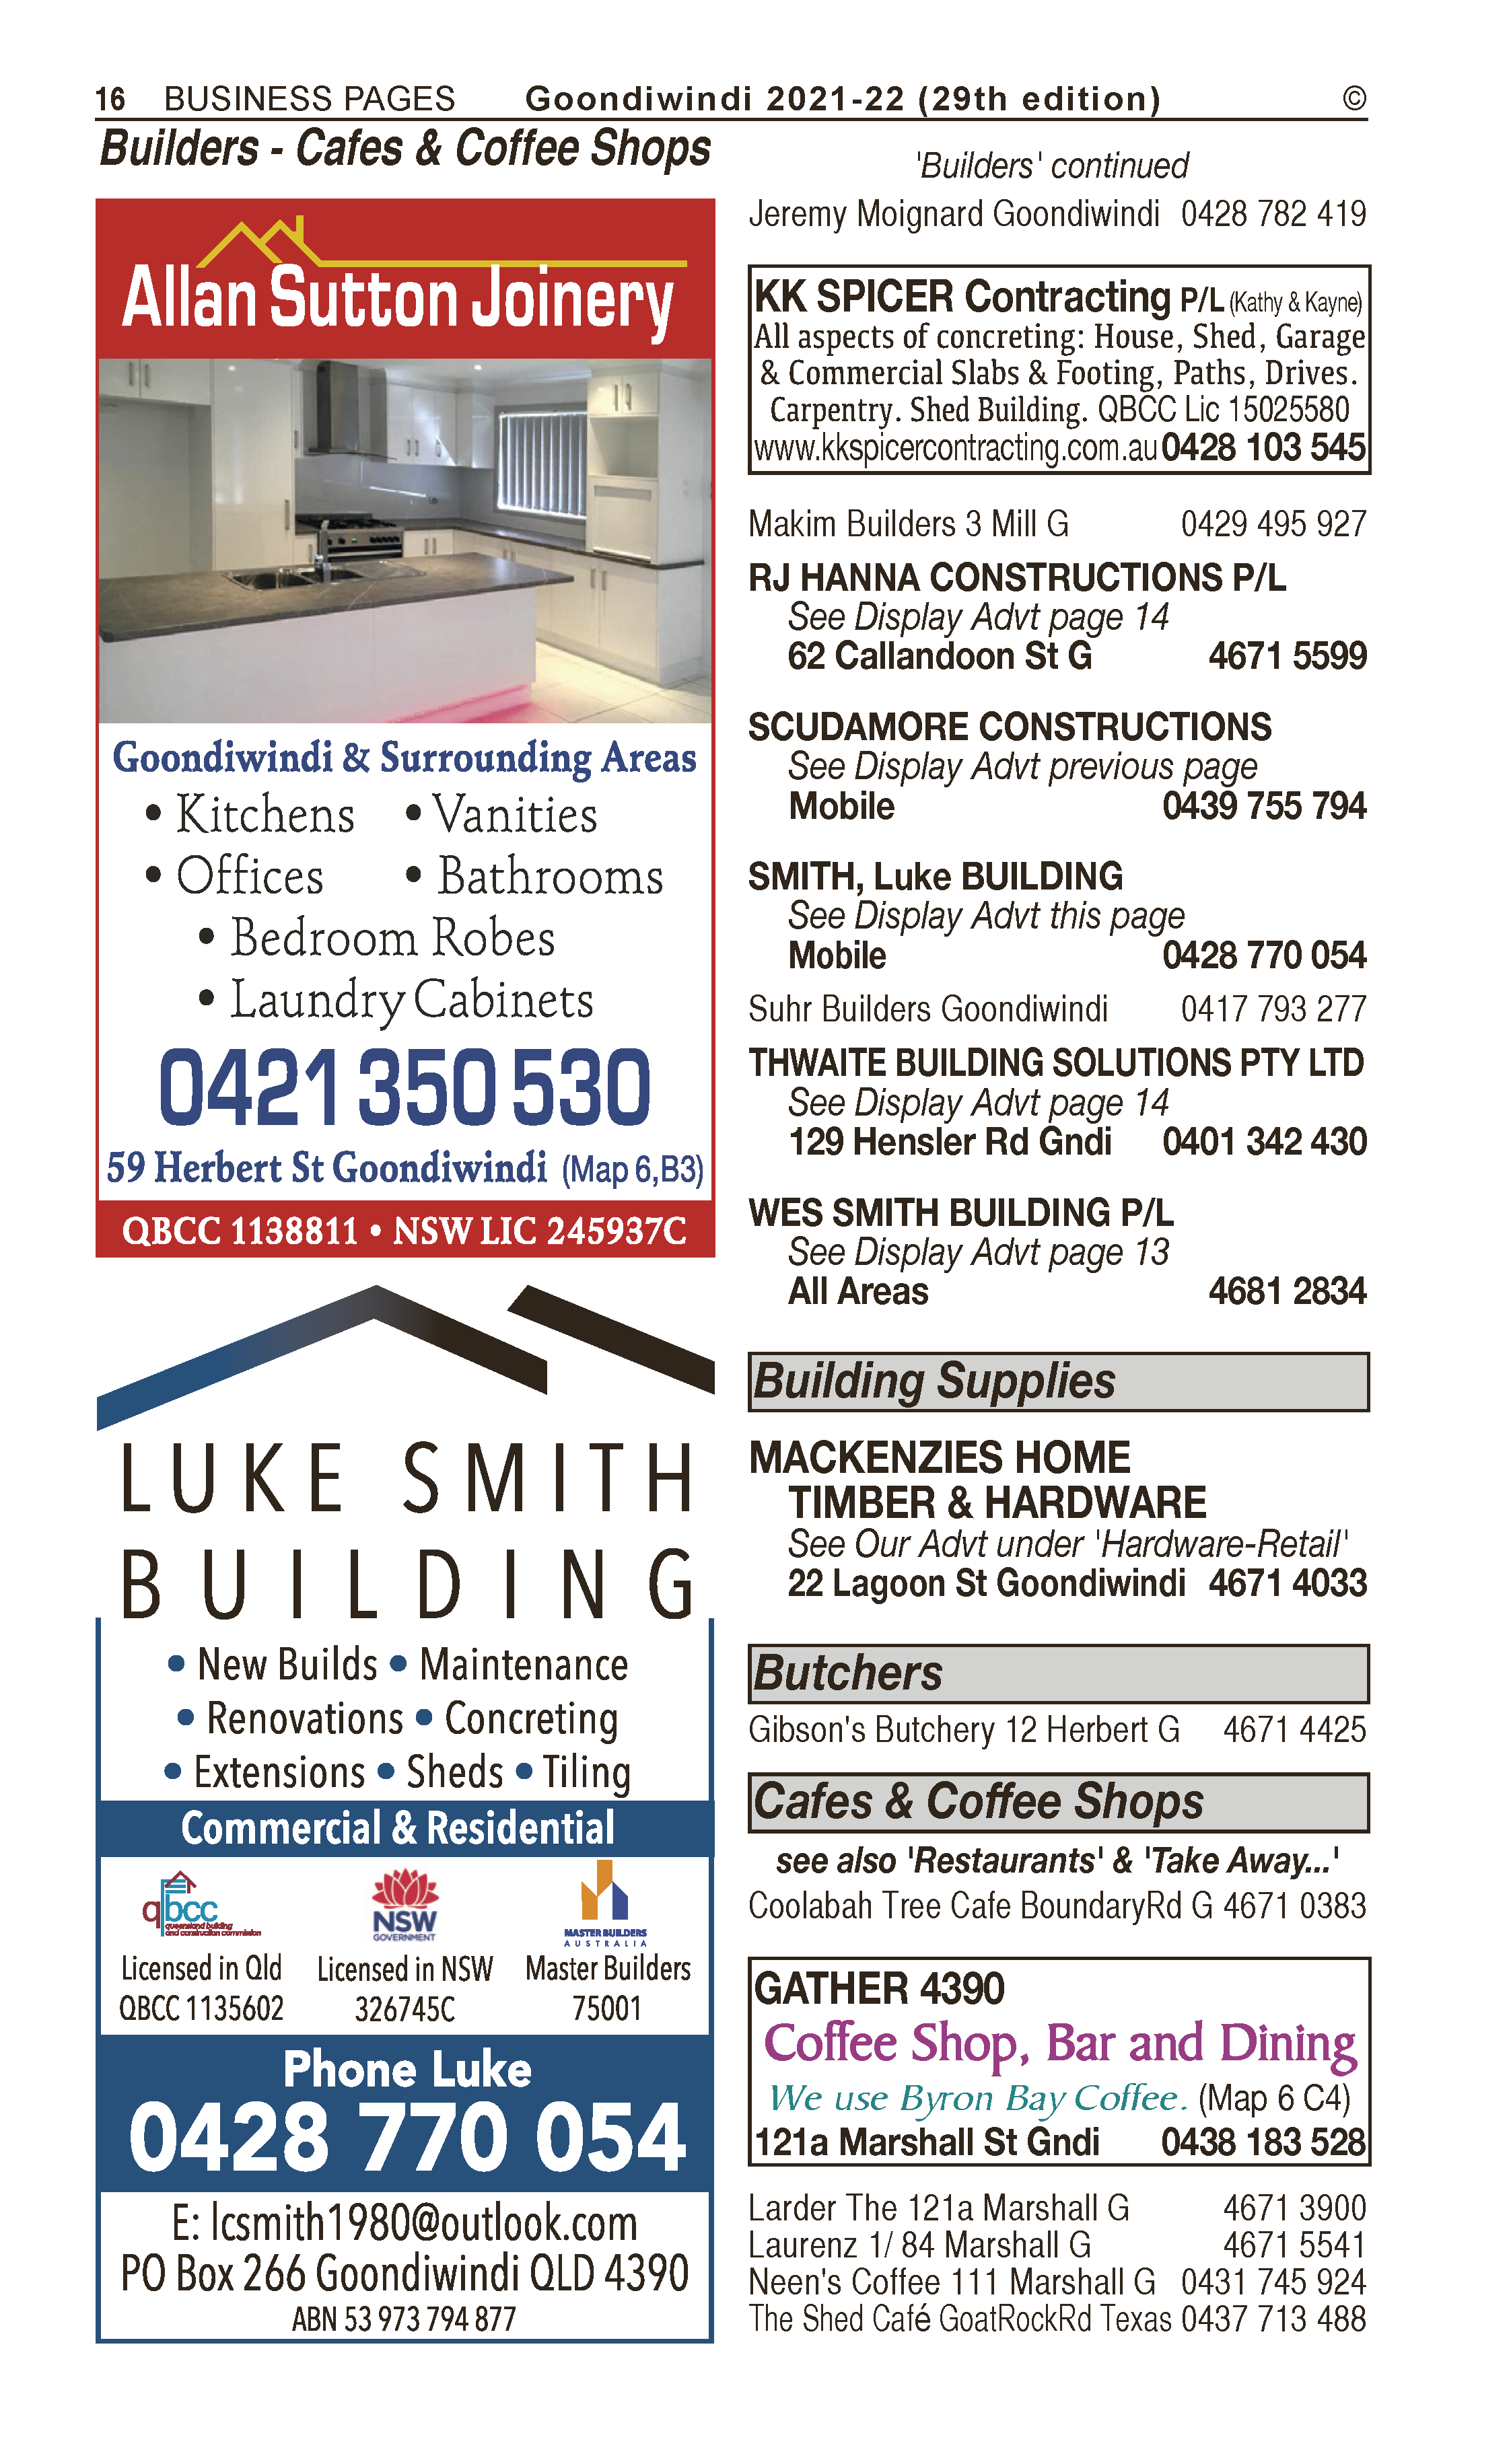 AJR Building Solutions | Builders & Building Consultants in Goondiwindi | PBezy Pocket Books local directories - page 16